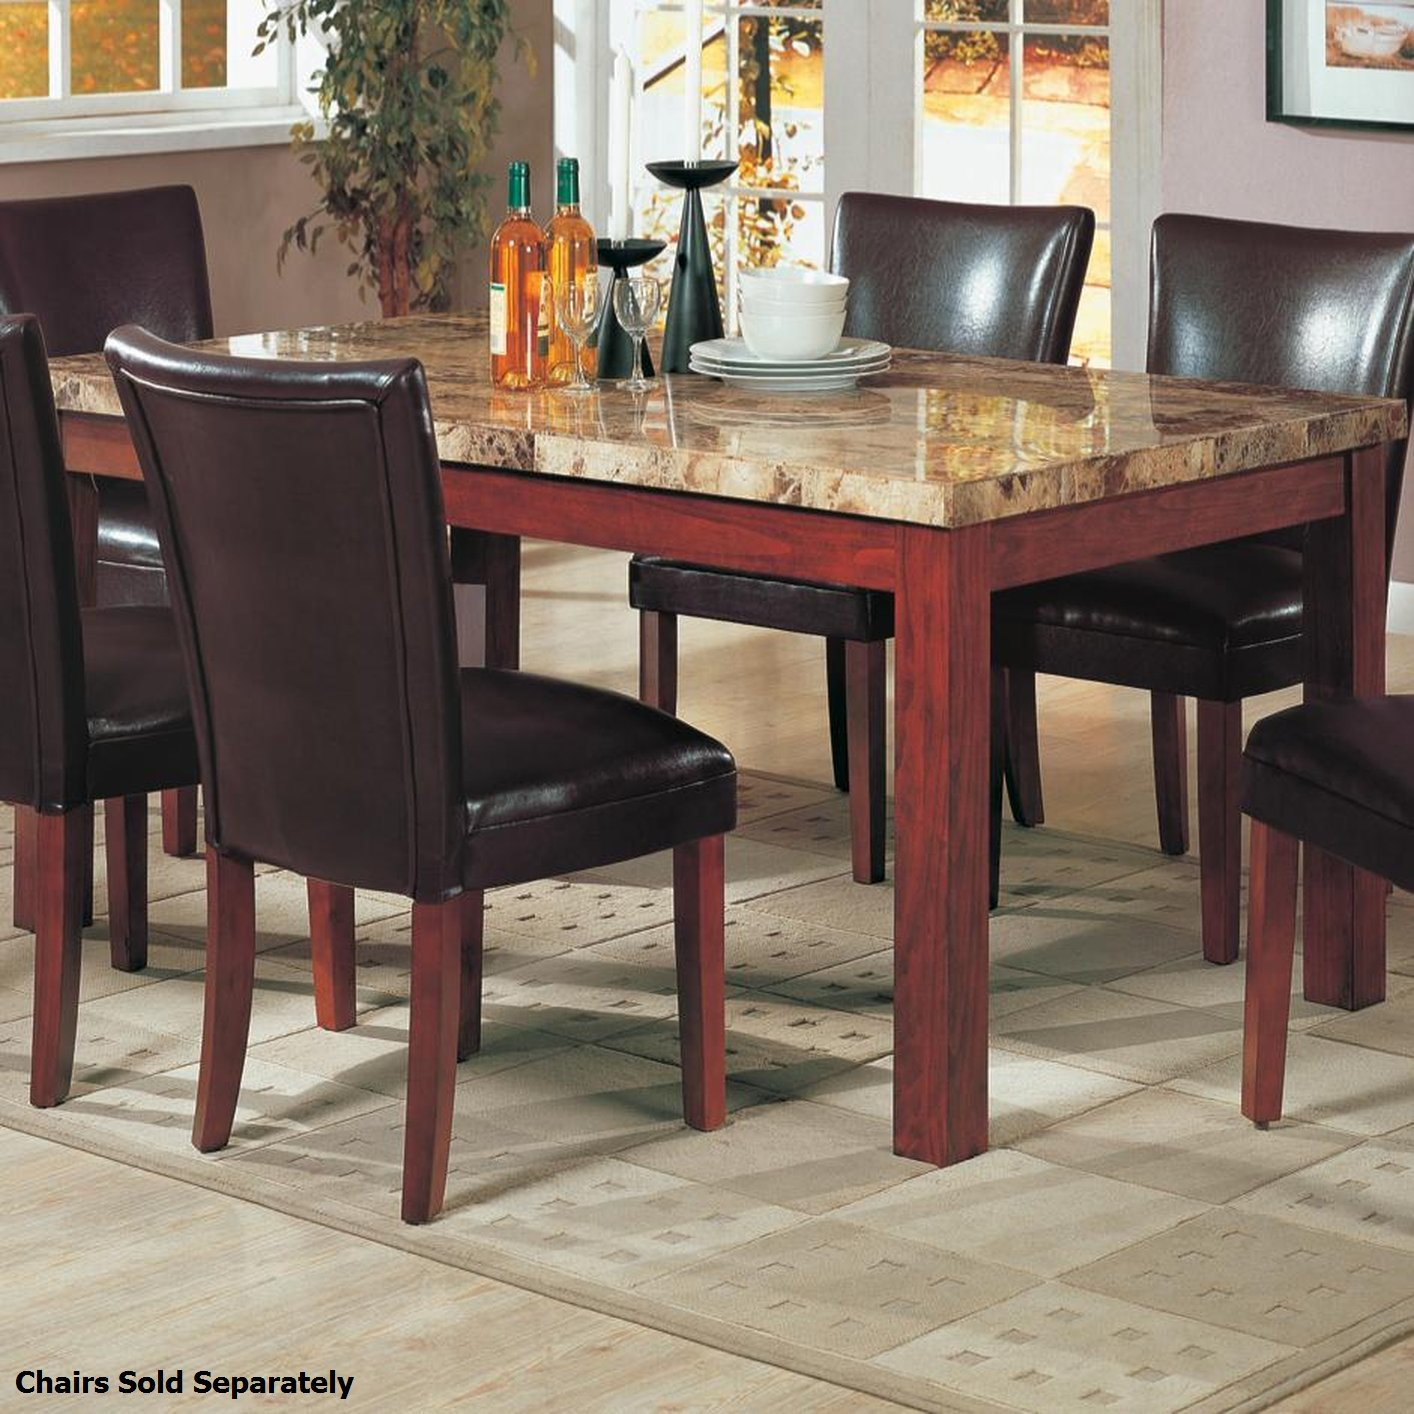 Brown Dining Room Table: Coaster 120311 Brown Marble Dining Table